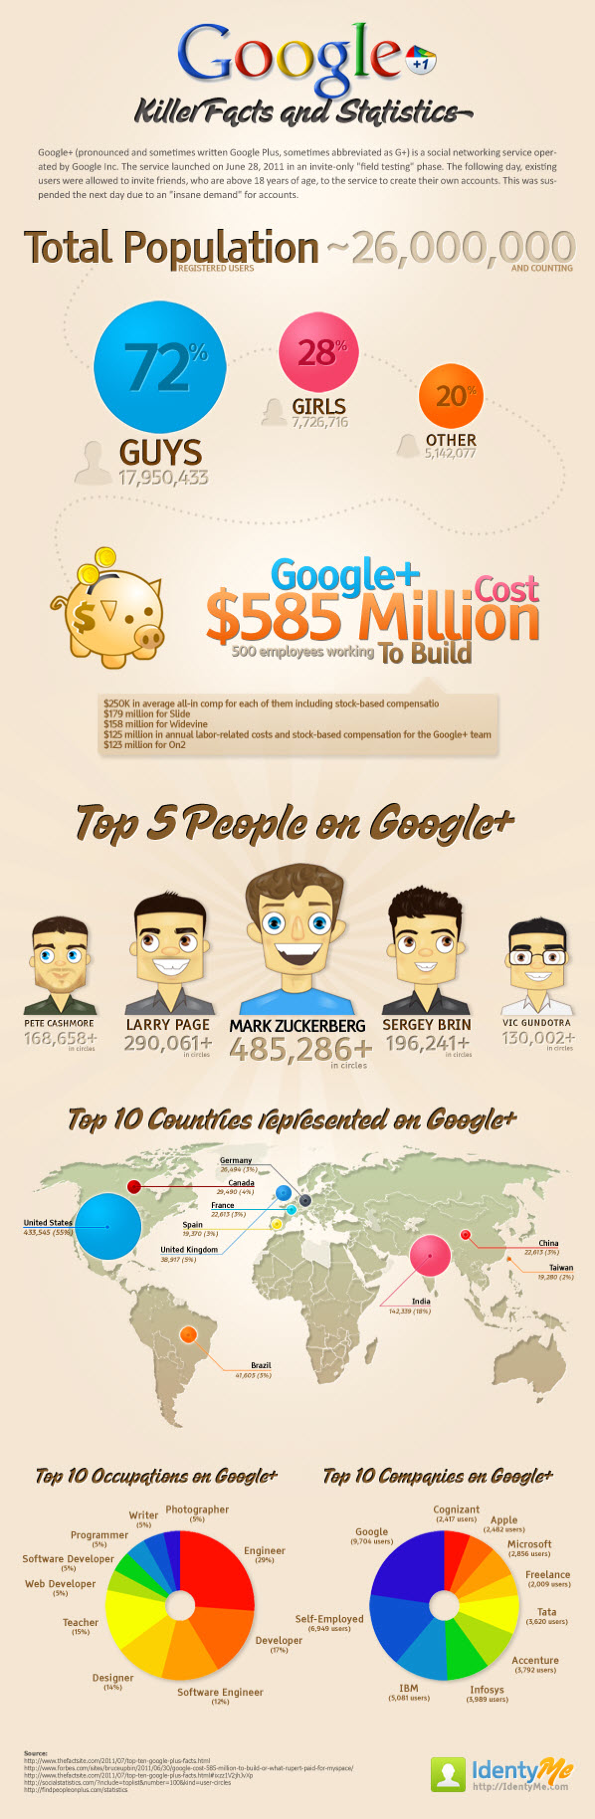 Google-Plus-Facts-and-Figures